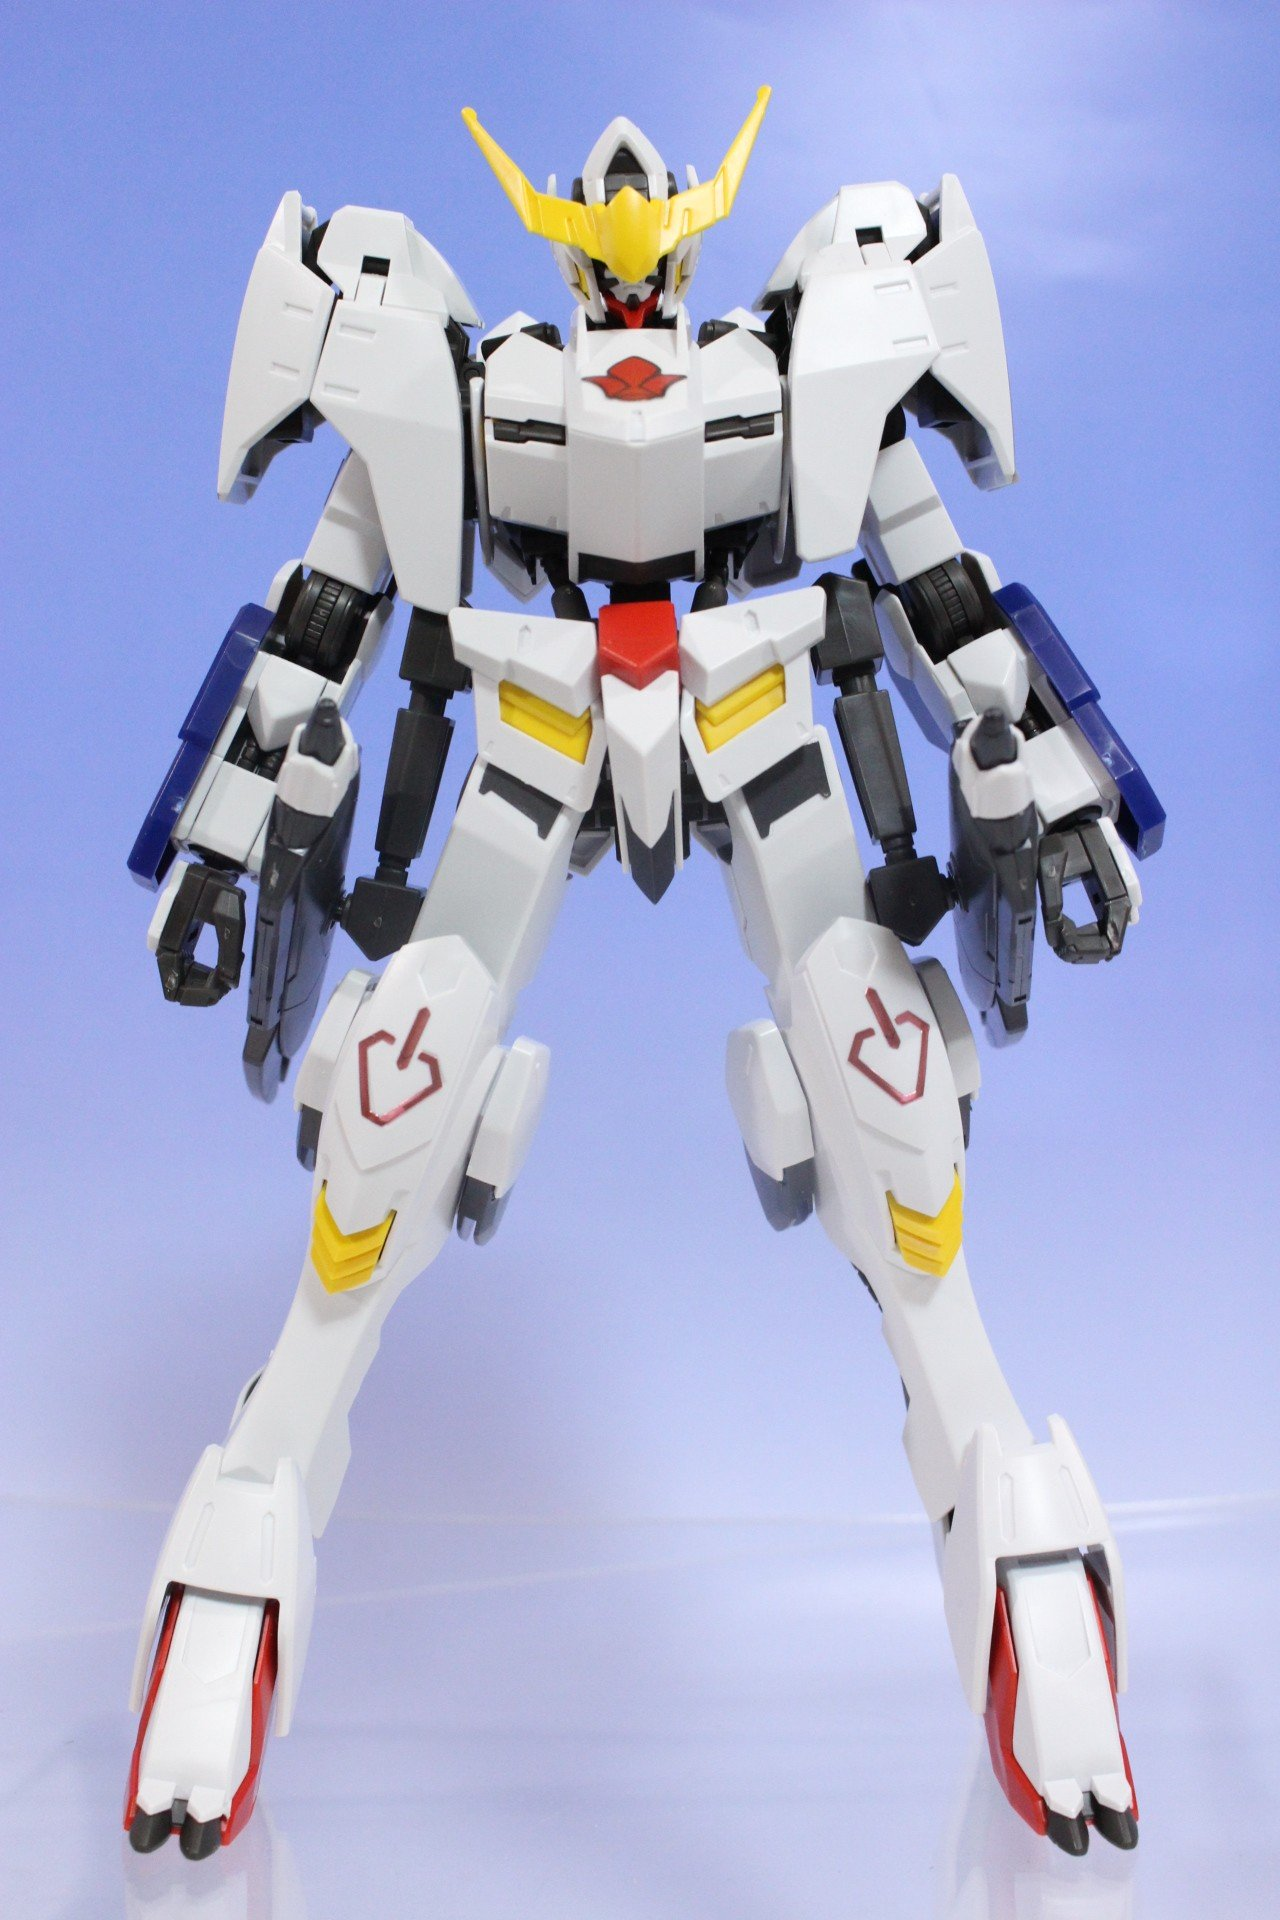 FULL REVIEW] 1/100 GUNDAM BARBATOS 6TH FORM: No.67 Big Size Images ...